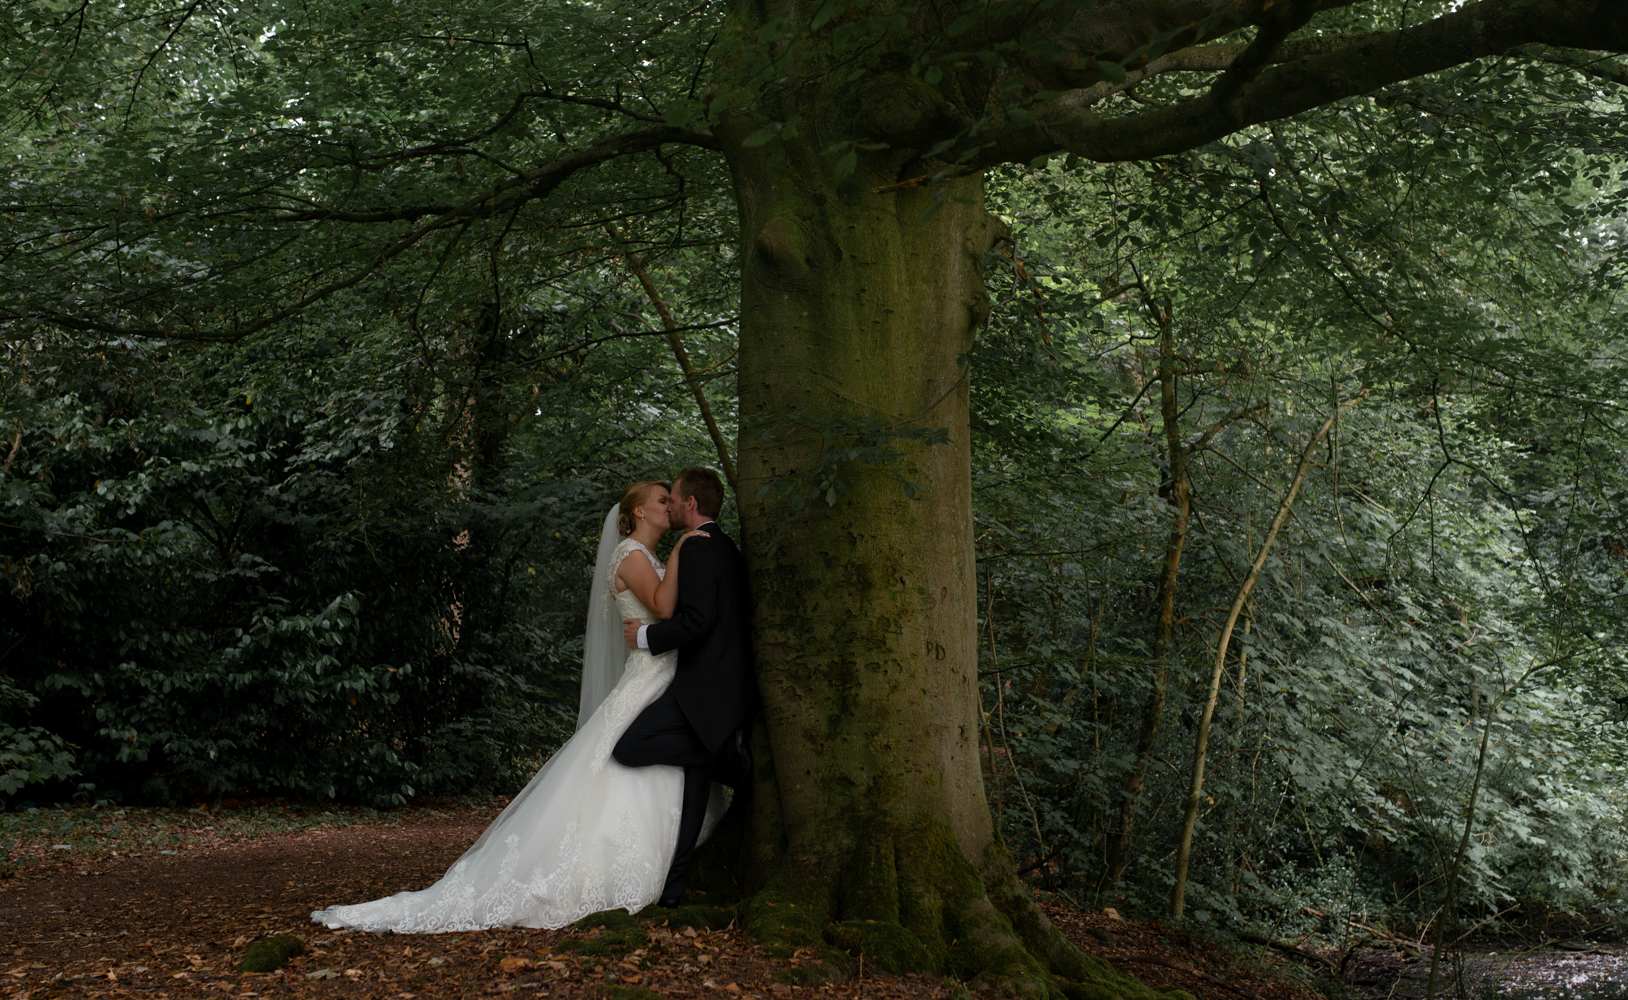 The bride and groom standing in the woods